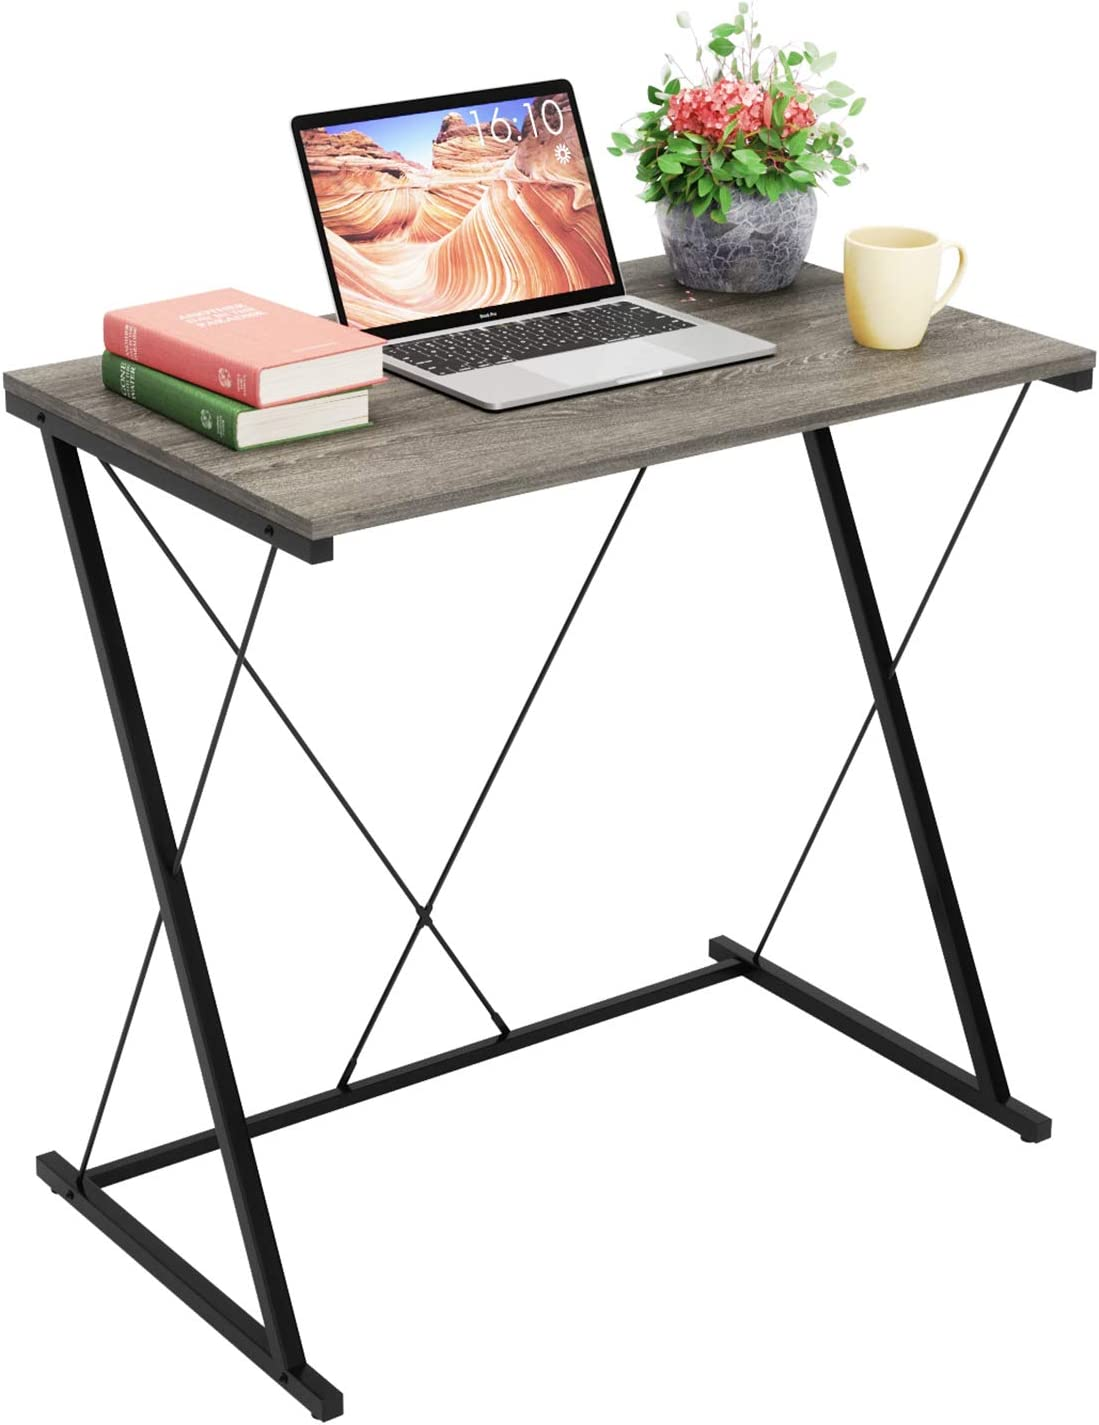 Domy Home Writing Computer Desk Simple PC Laptop Table Workstation for Home Office, Easy Assembly